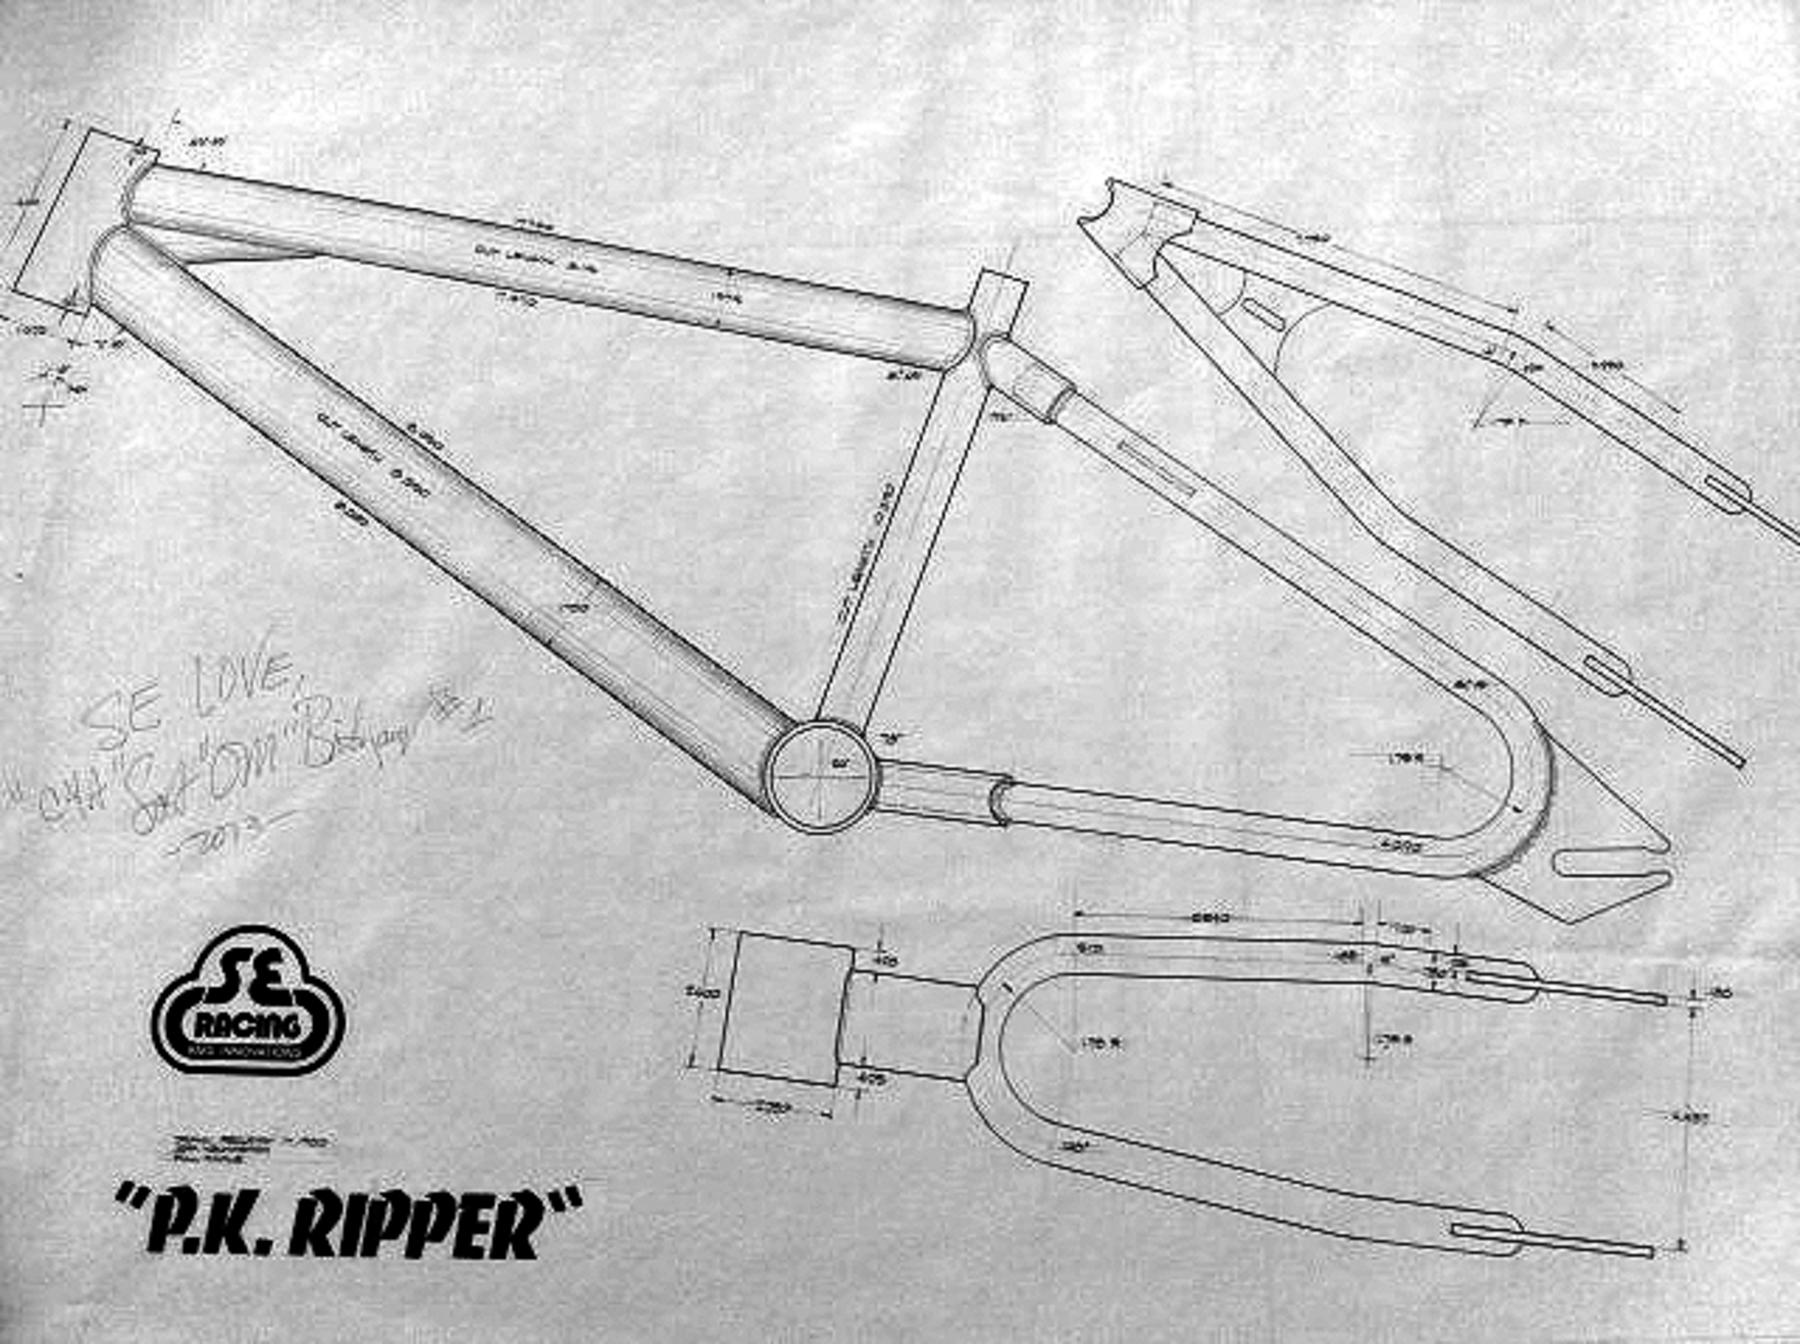 Bmxmuseum reference se racing signed frame blue prints gary ownercurator 1193 0 0 7132015 malvernweather Choice Image